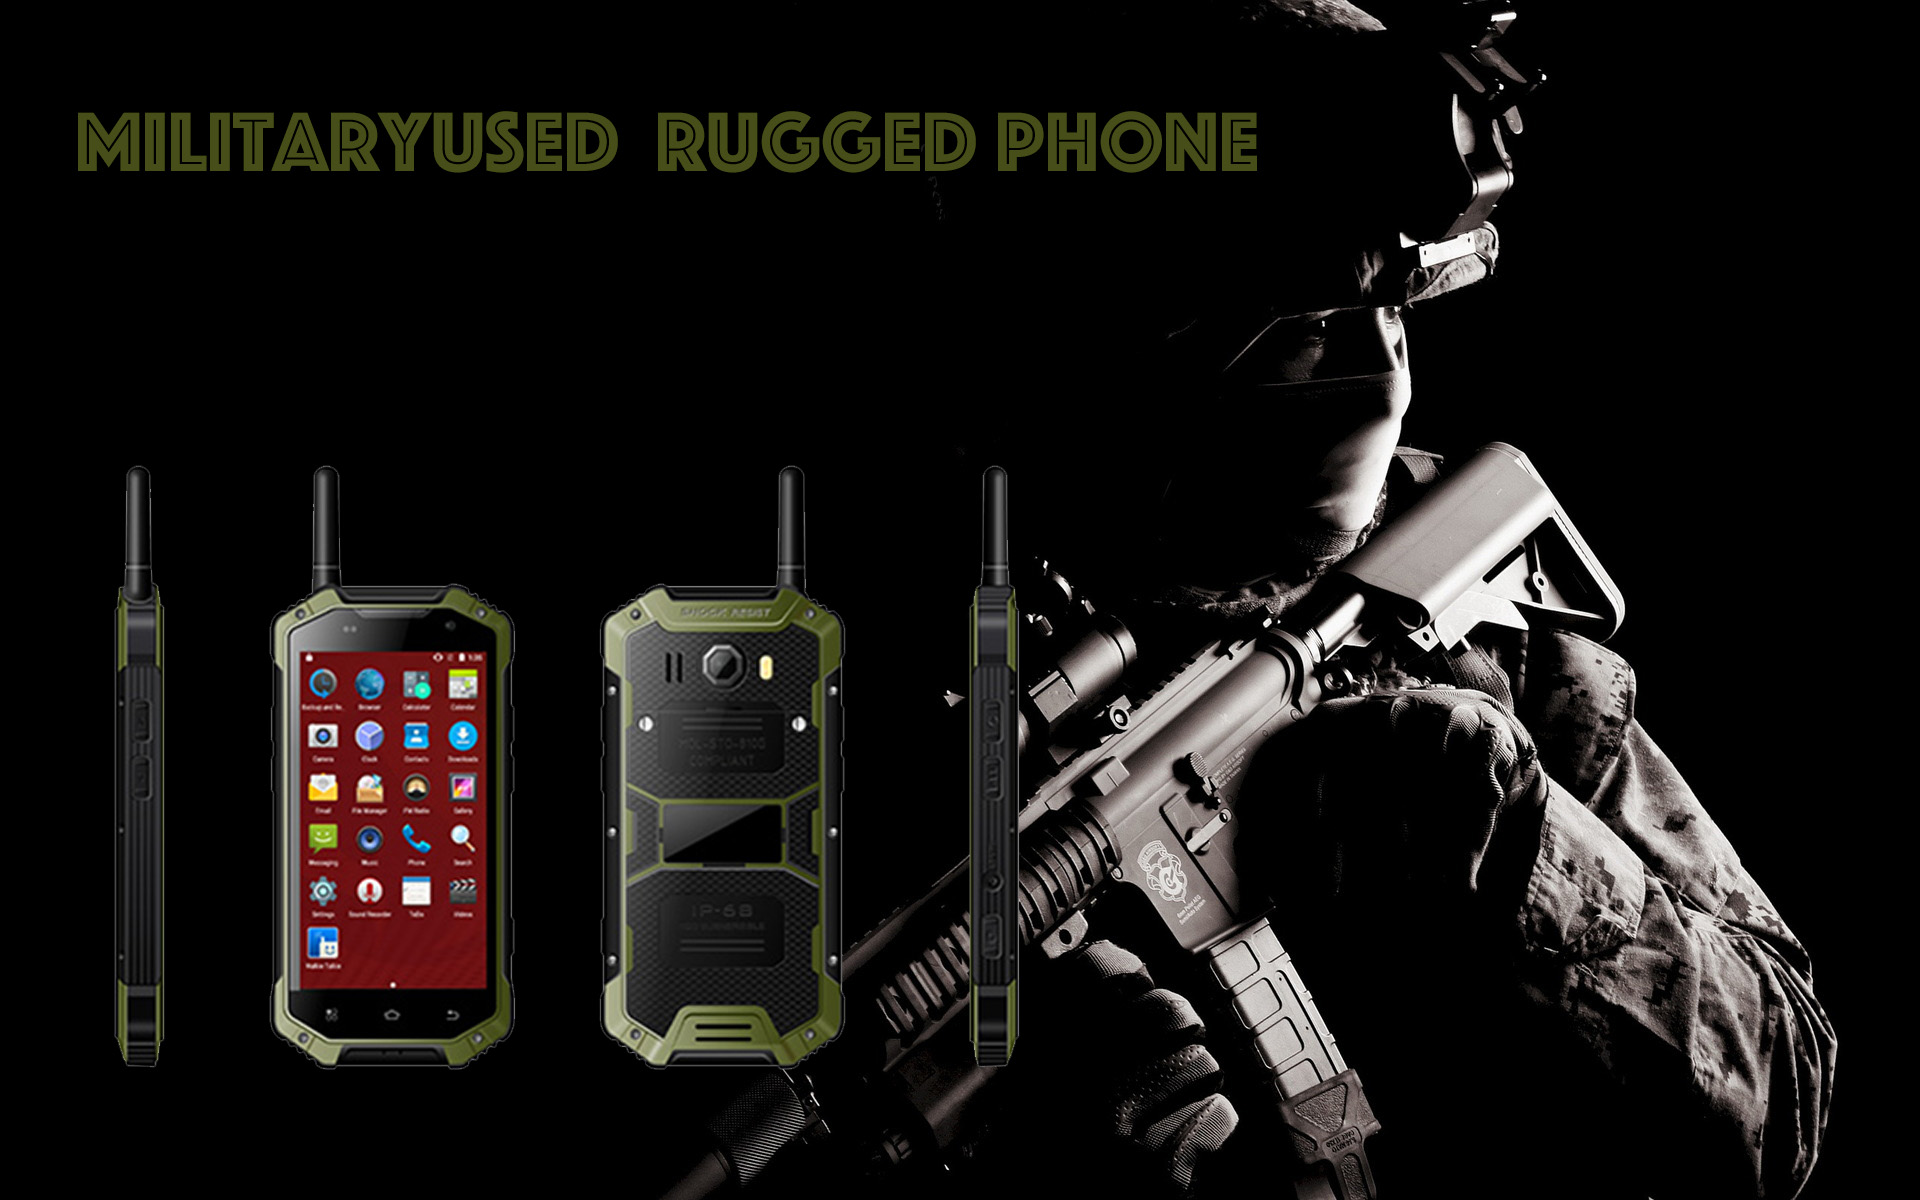 Military Rugged Phone